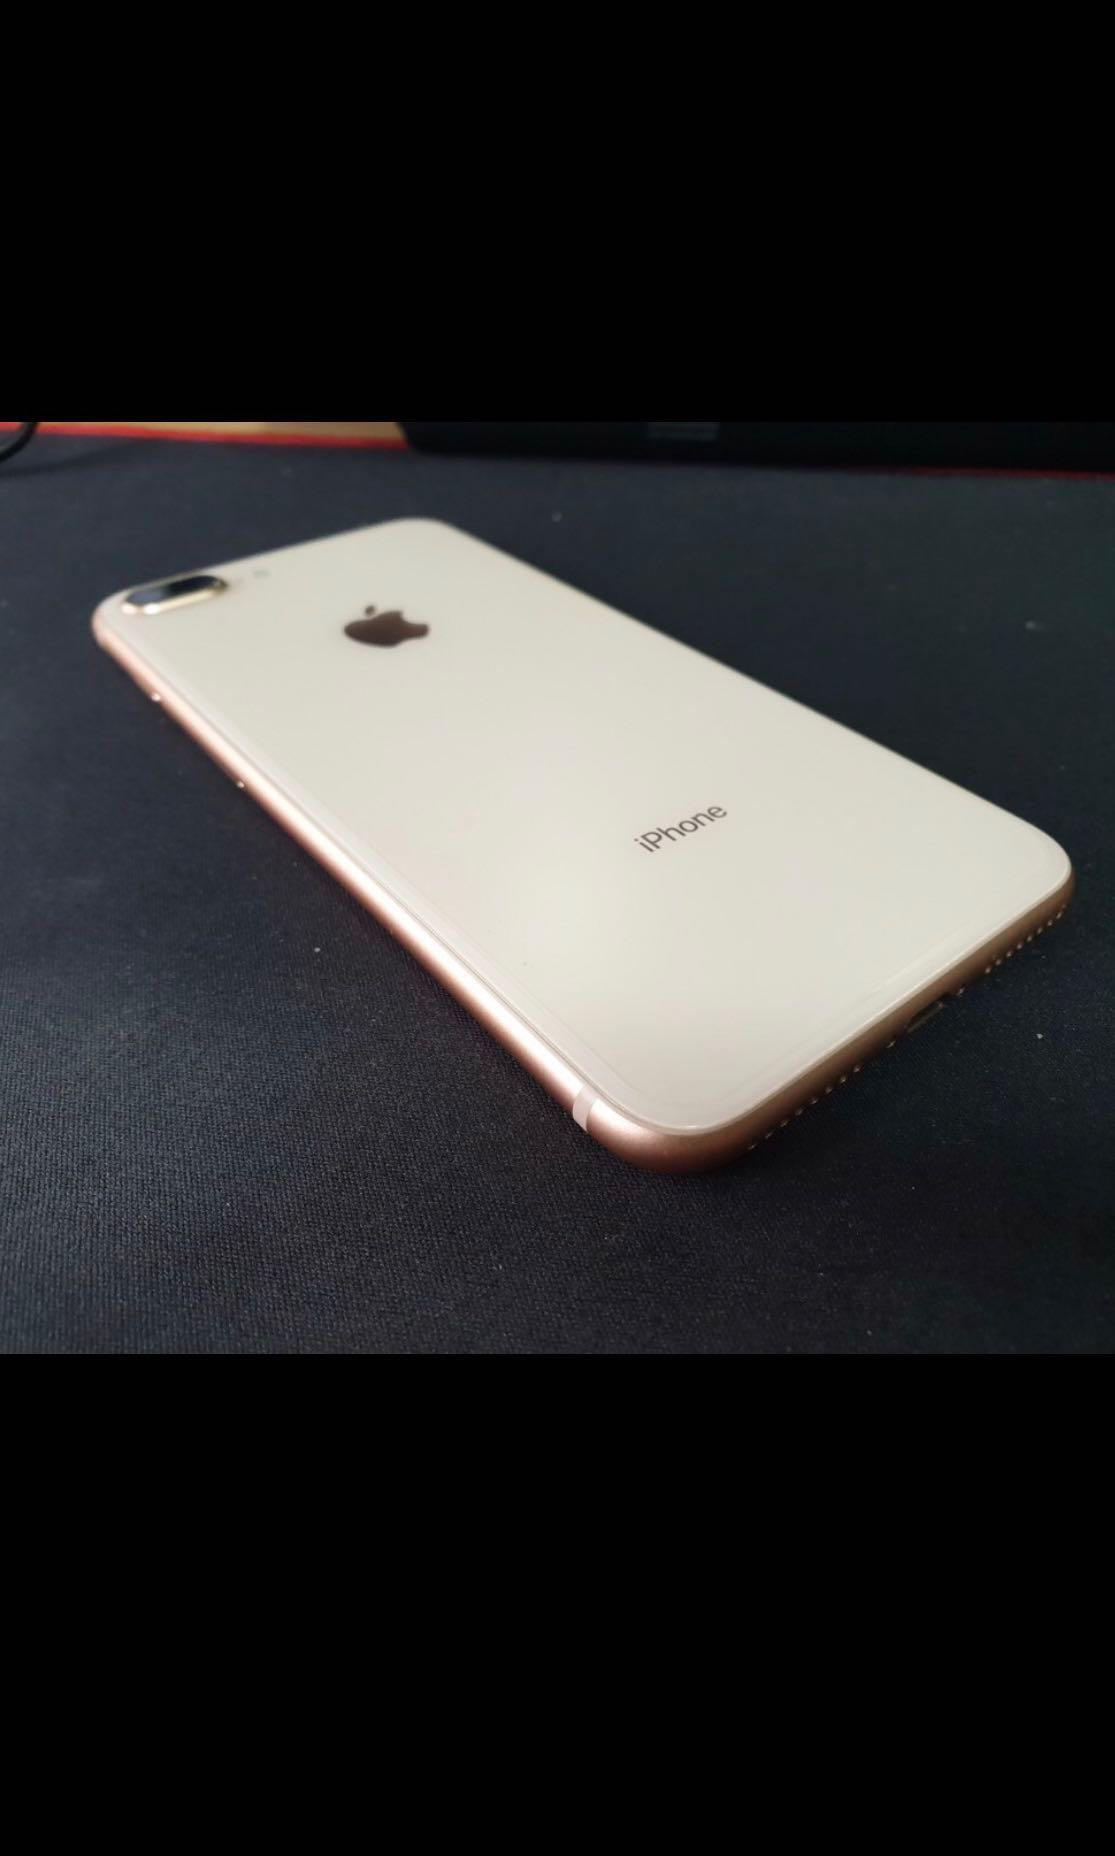 Iphone 8+ / 8 plus for sale